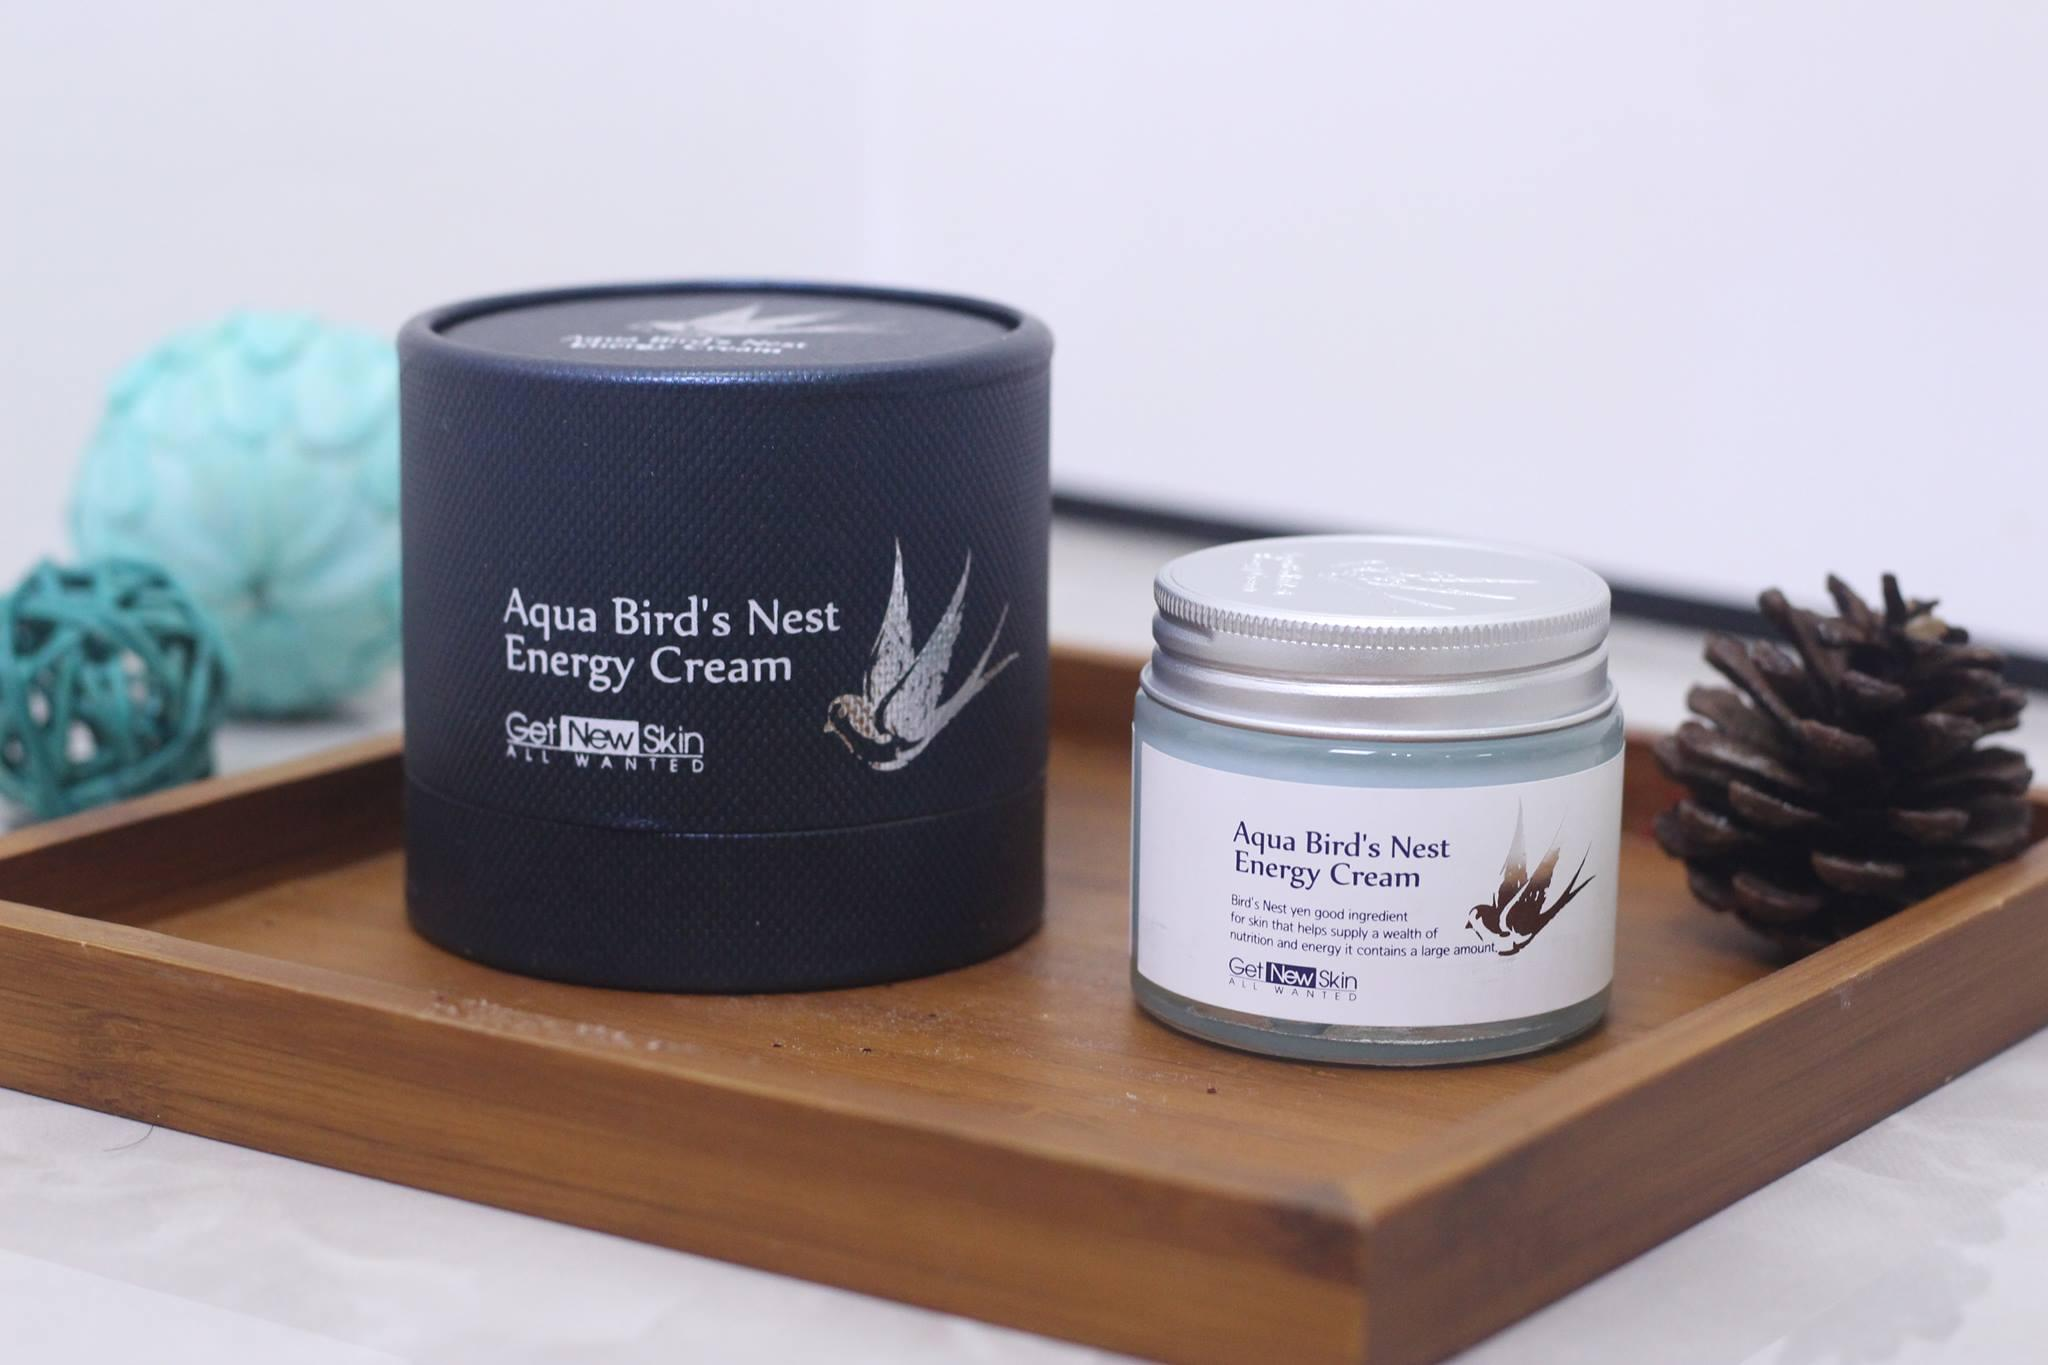 kem-duong-da-to-yen-aqua-bird-s-nest-energy-cream